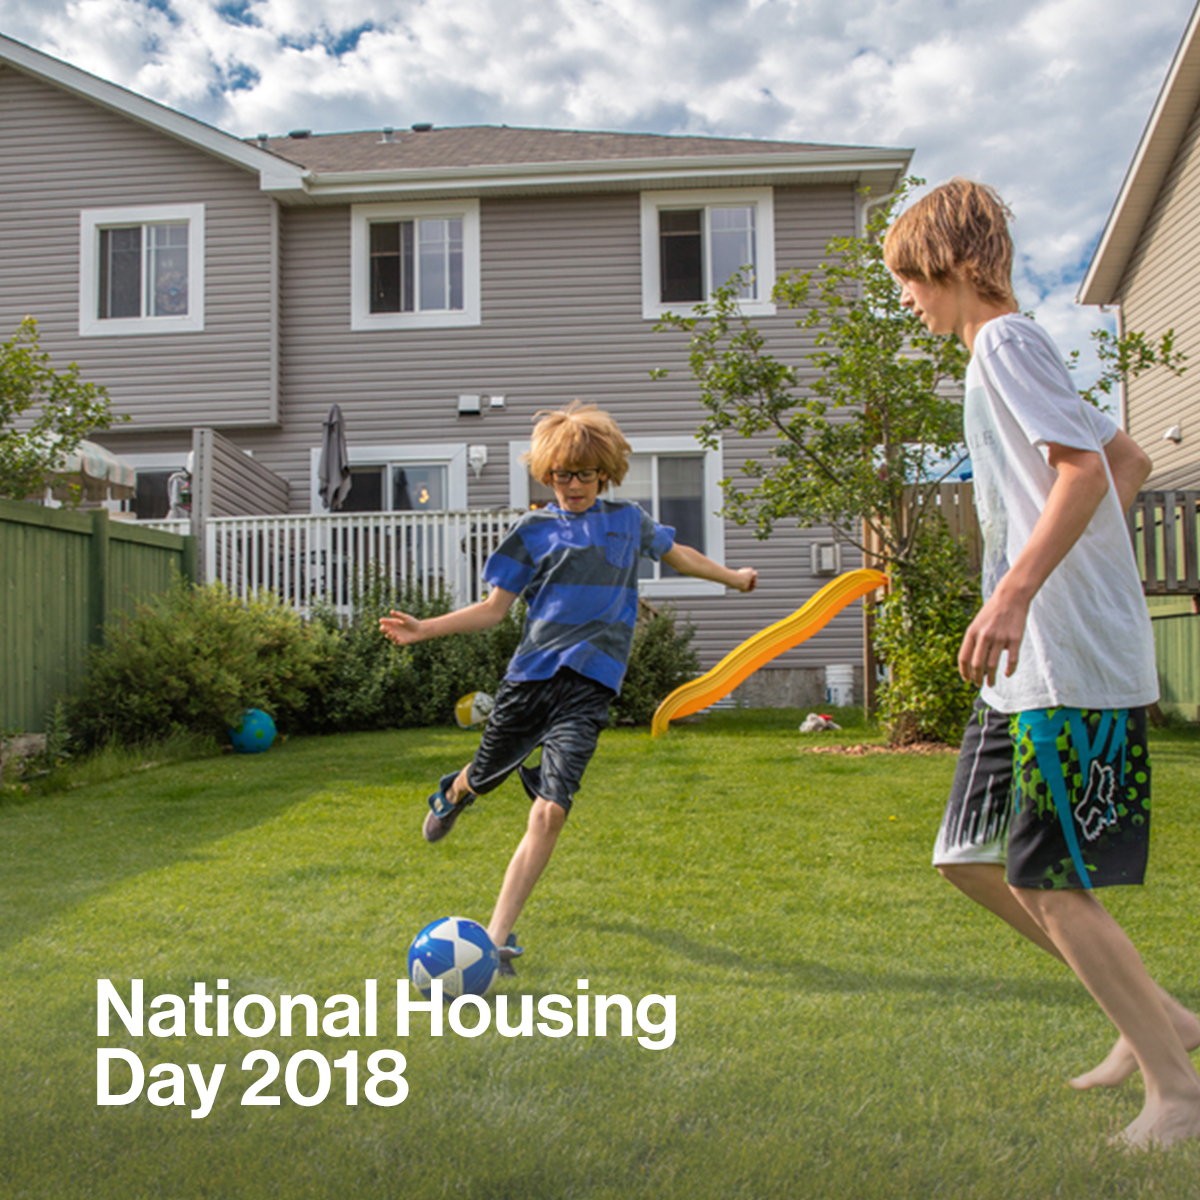 Option 2B National Housing Day Instagram